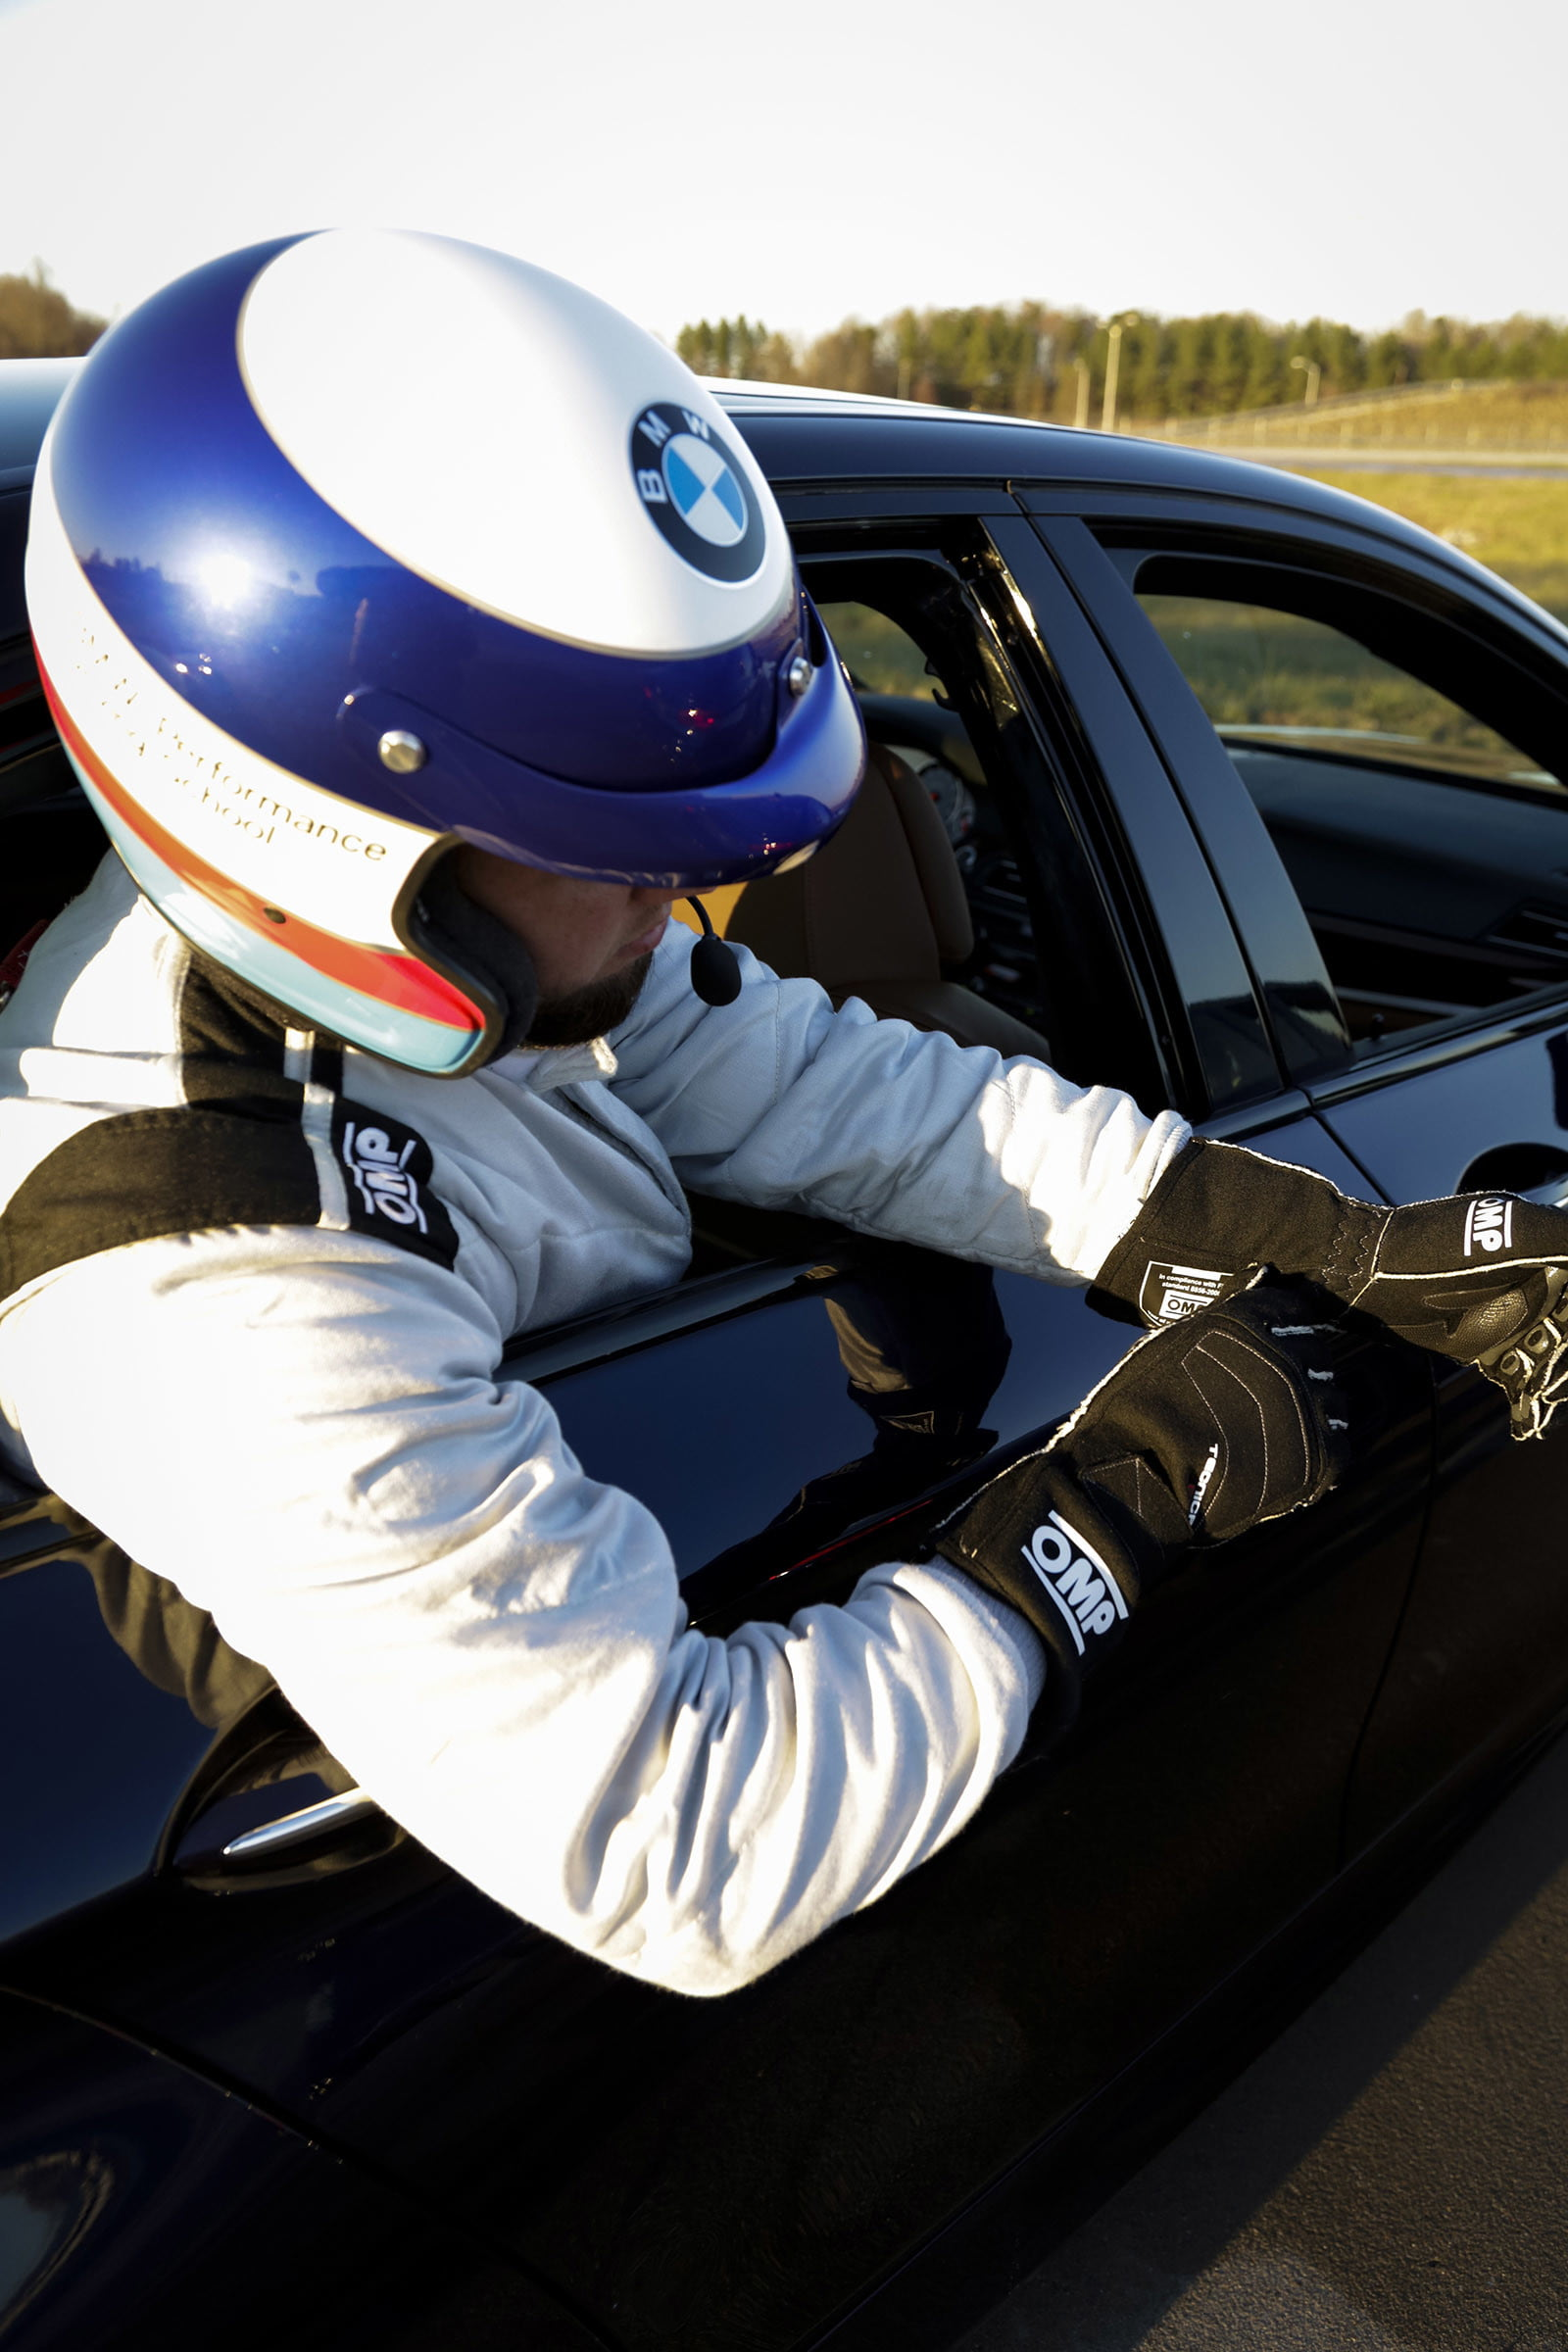 bmw sets two guinness world records drifting sideways for 2325 miles record  longest drift with 2018 m5 18